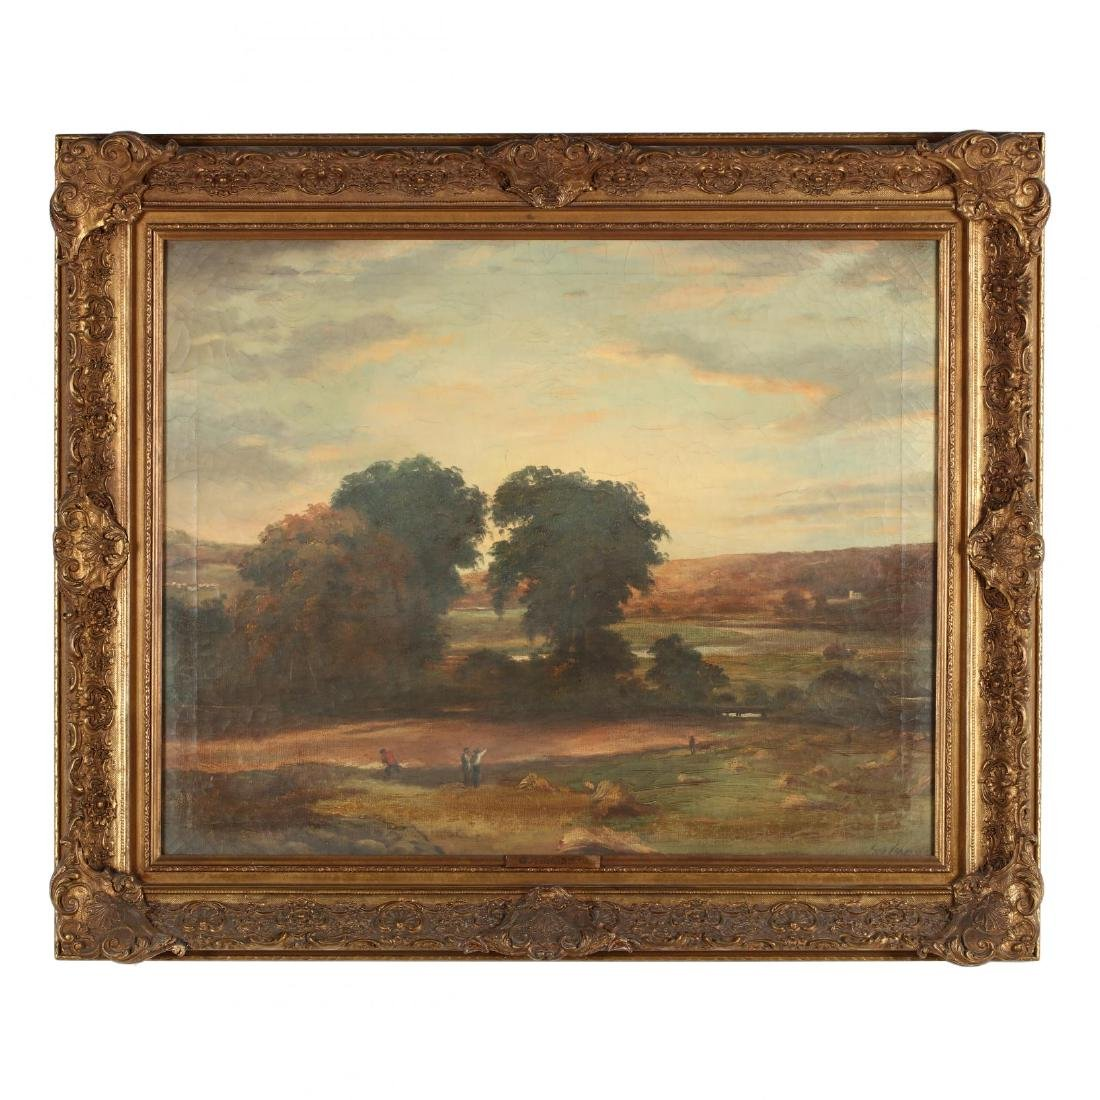 after George Inness Jr. (1854-1926), Clearing the